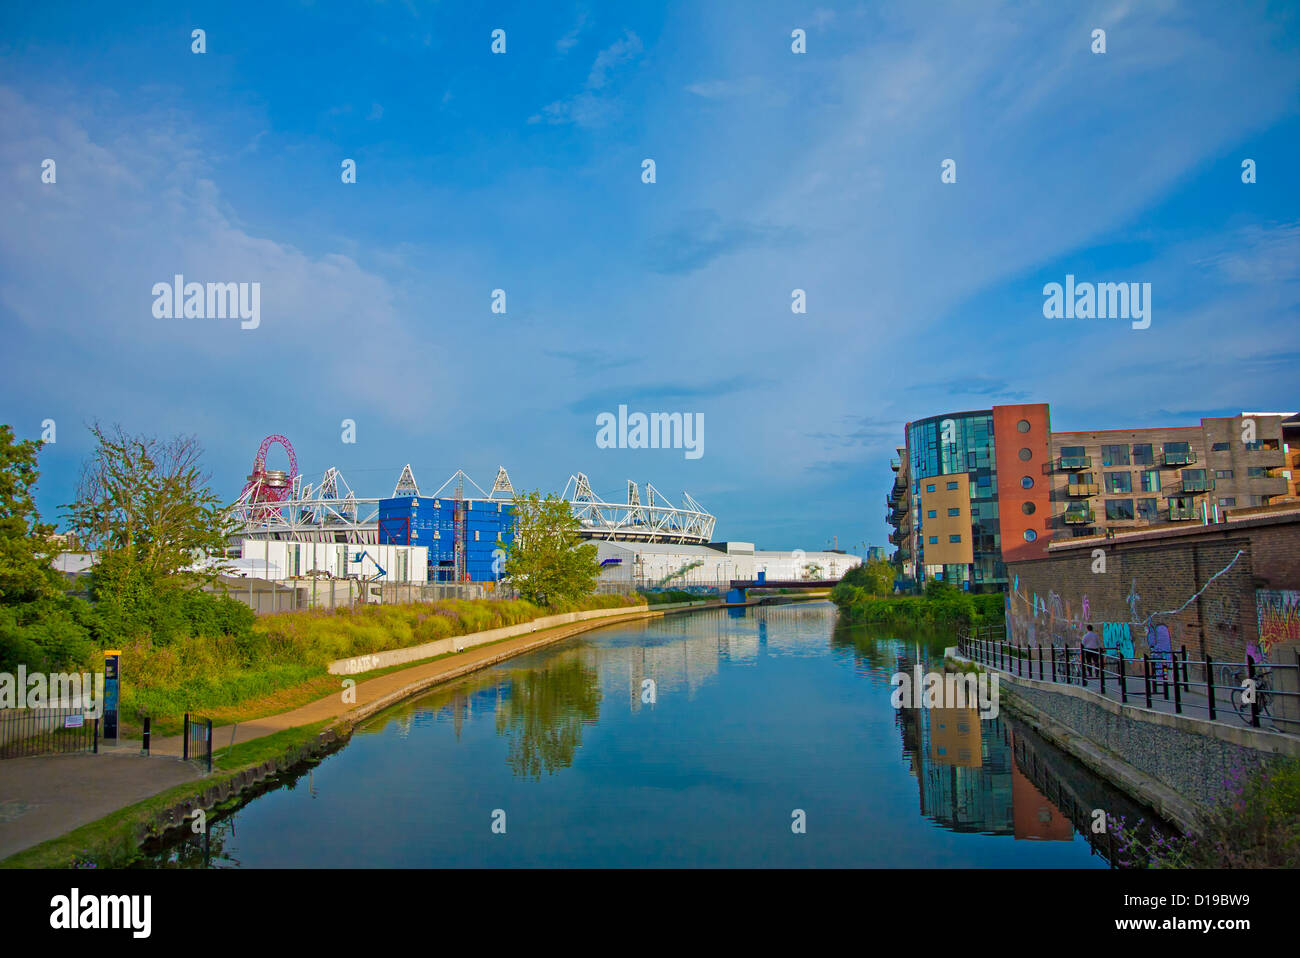 View of the olympic stadium and arcelor mittal orbit in stratford view of the olympic stadium and arcelor mittal orbit in stratford across the river lea navigation hackney wick east london buycottarizona